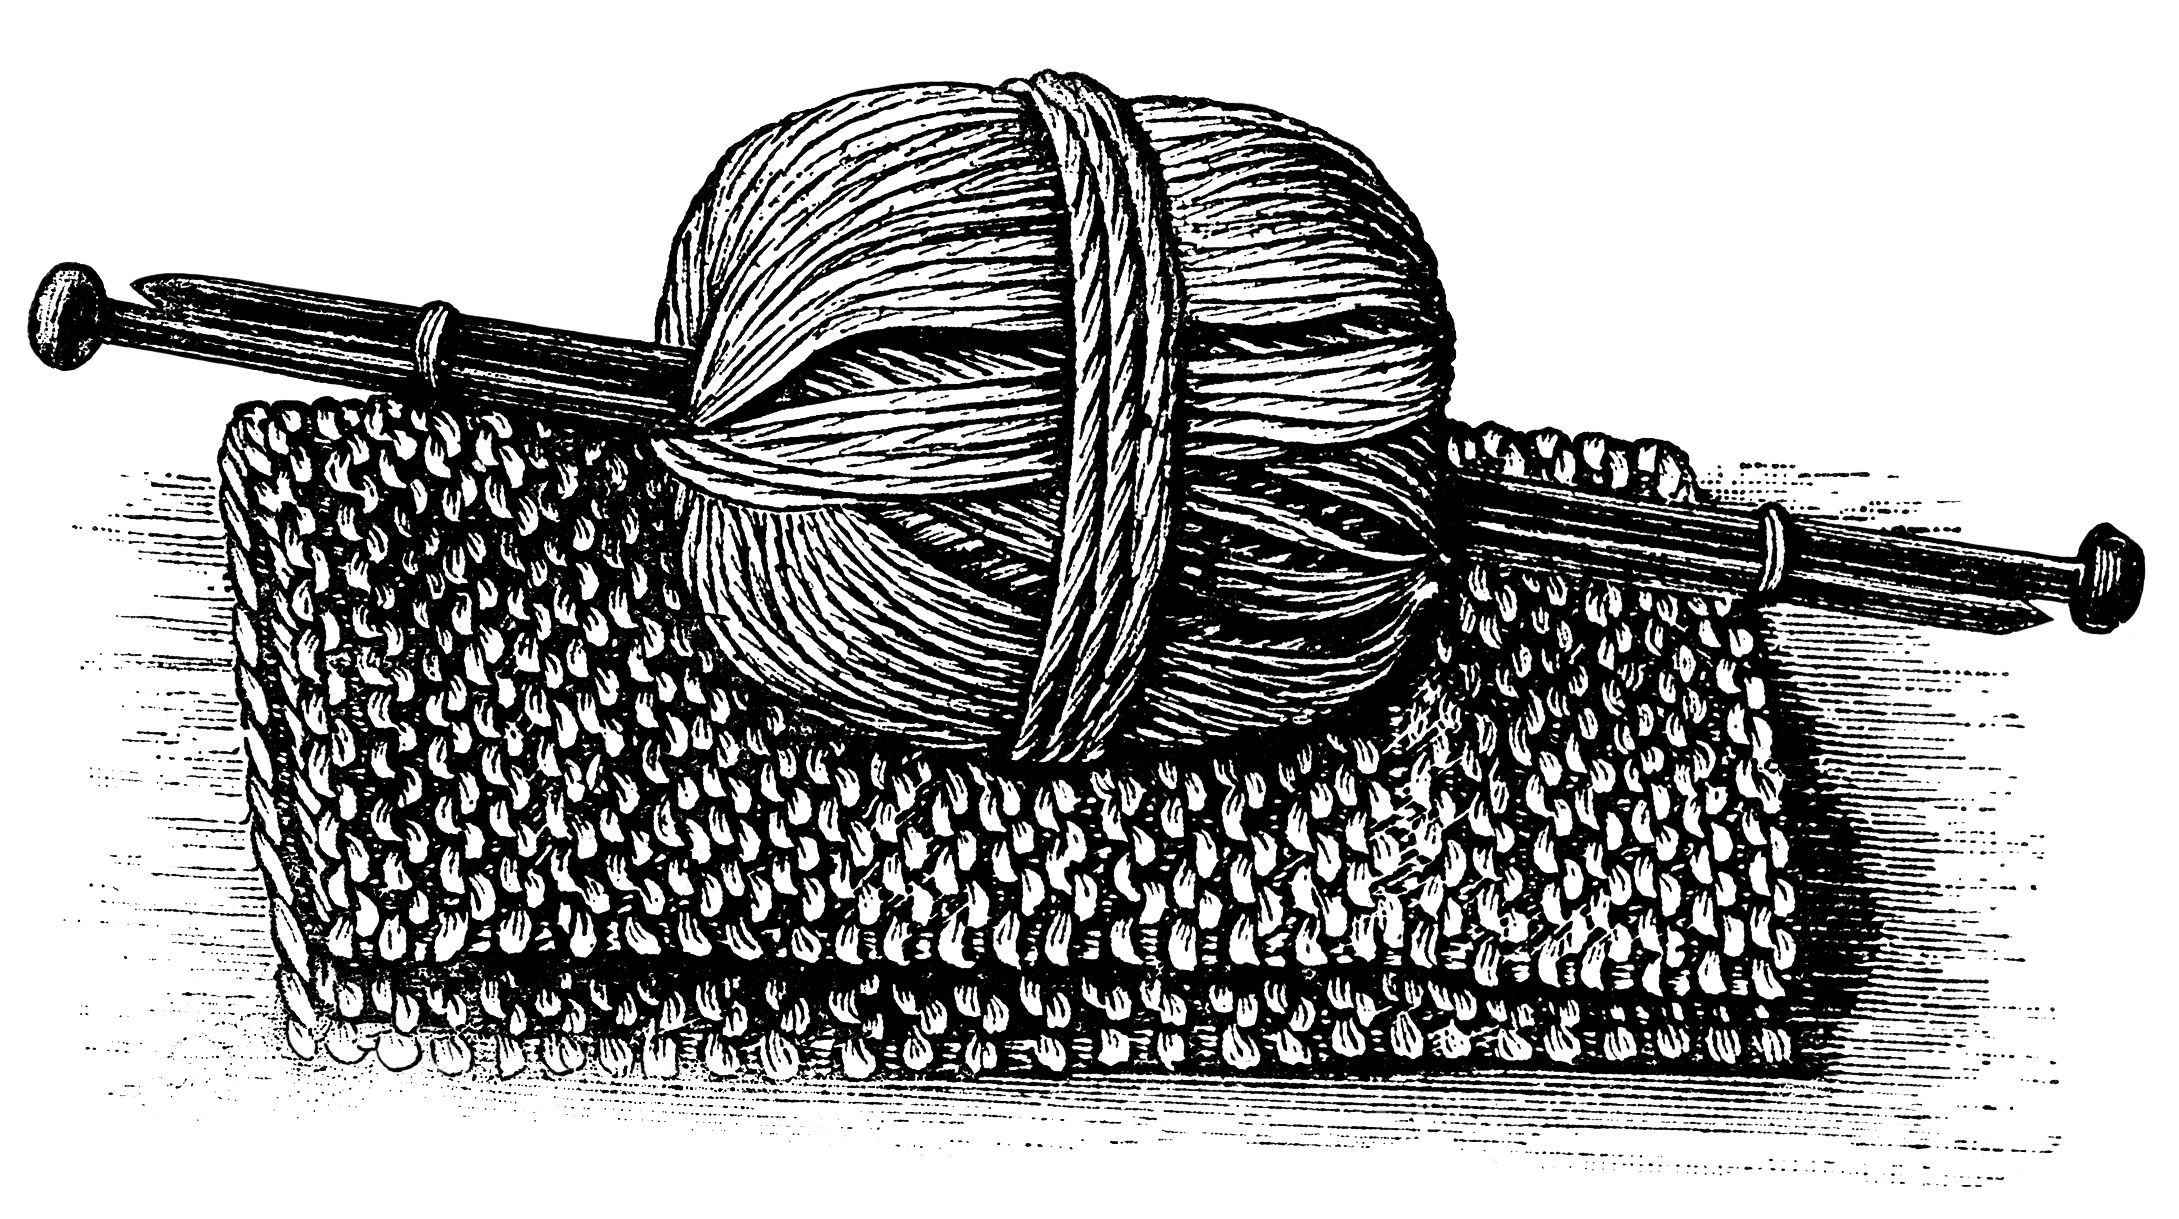 Ball of yarn black and white clipart freeuse library black and white graphics, vintage knitting clipart, ball of yarn ... freeuse library